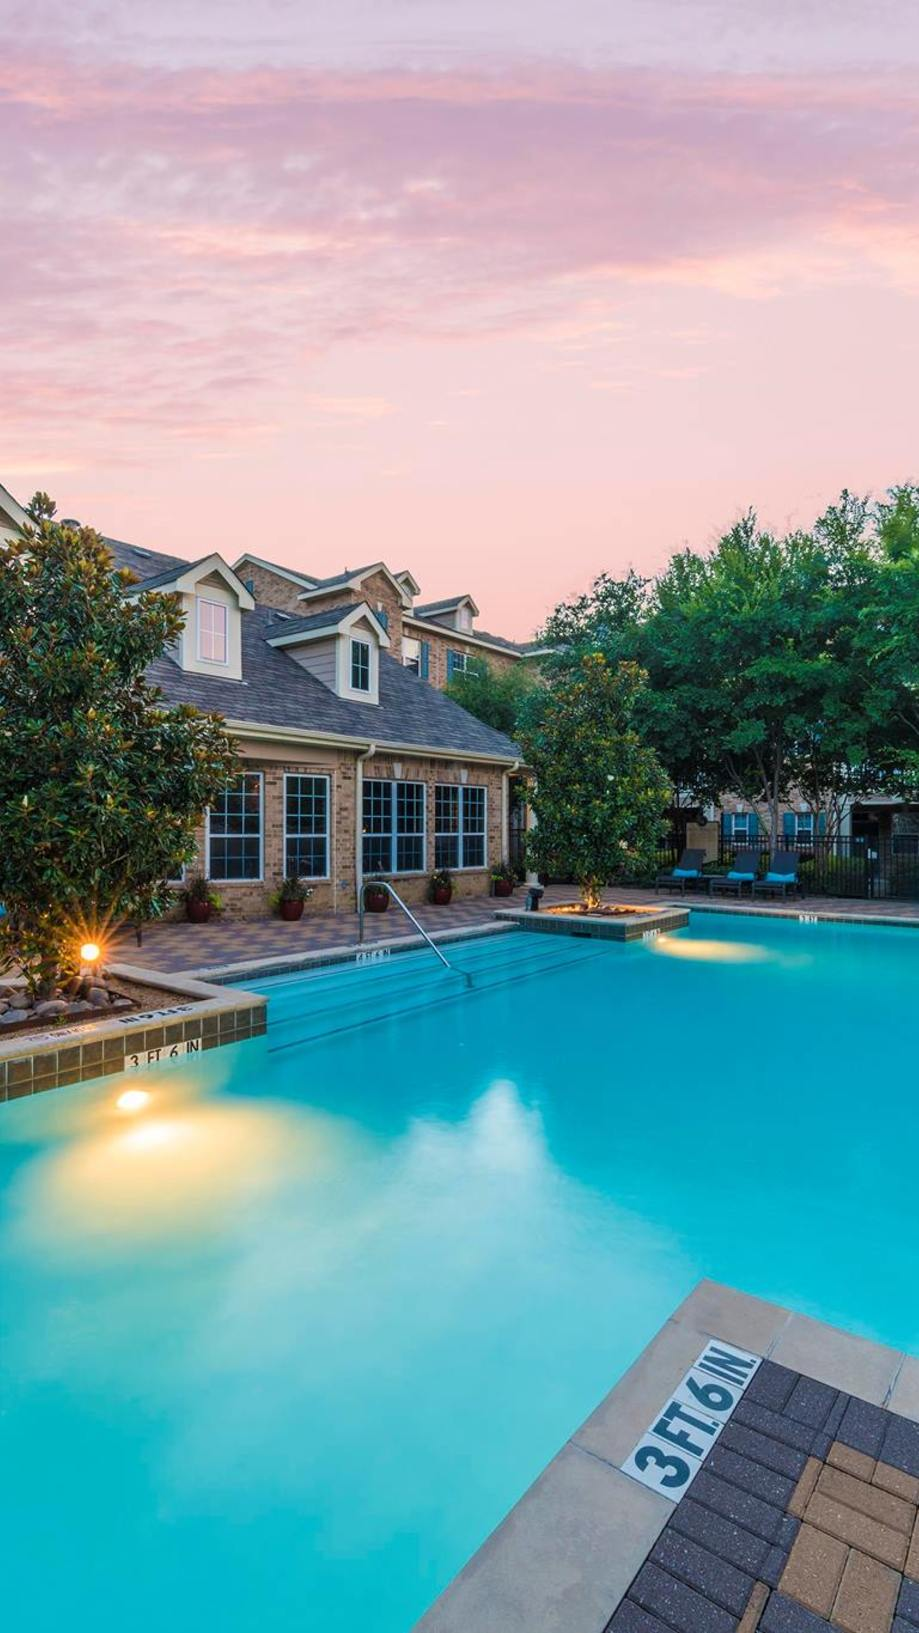 Luxury Townhome Apartments for Rent near Lower Greenville